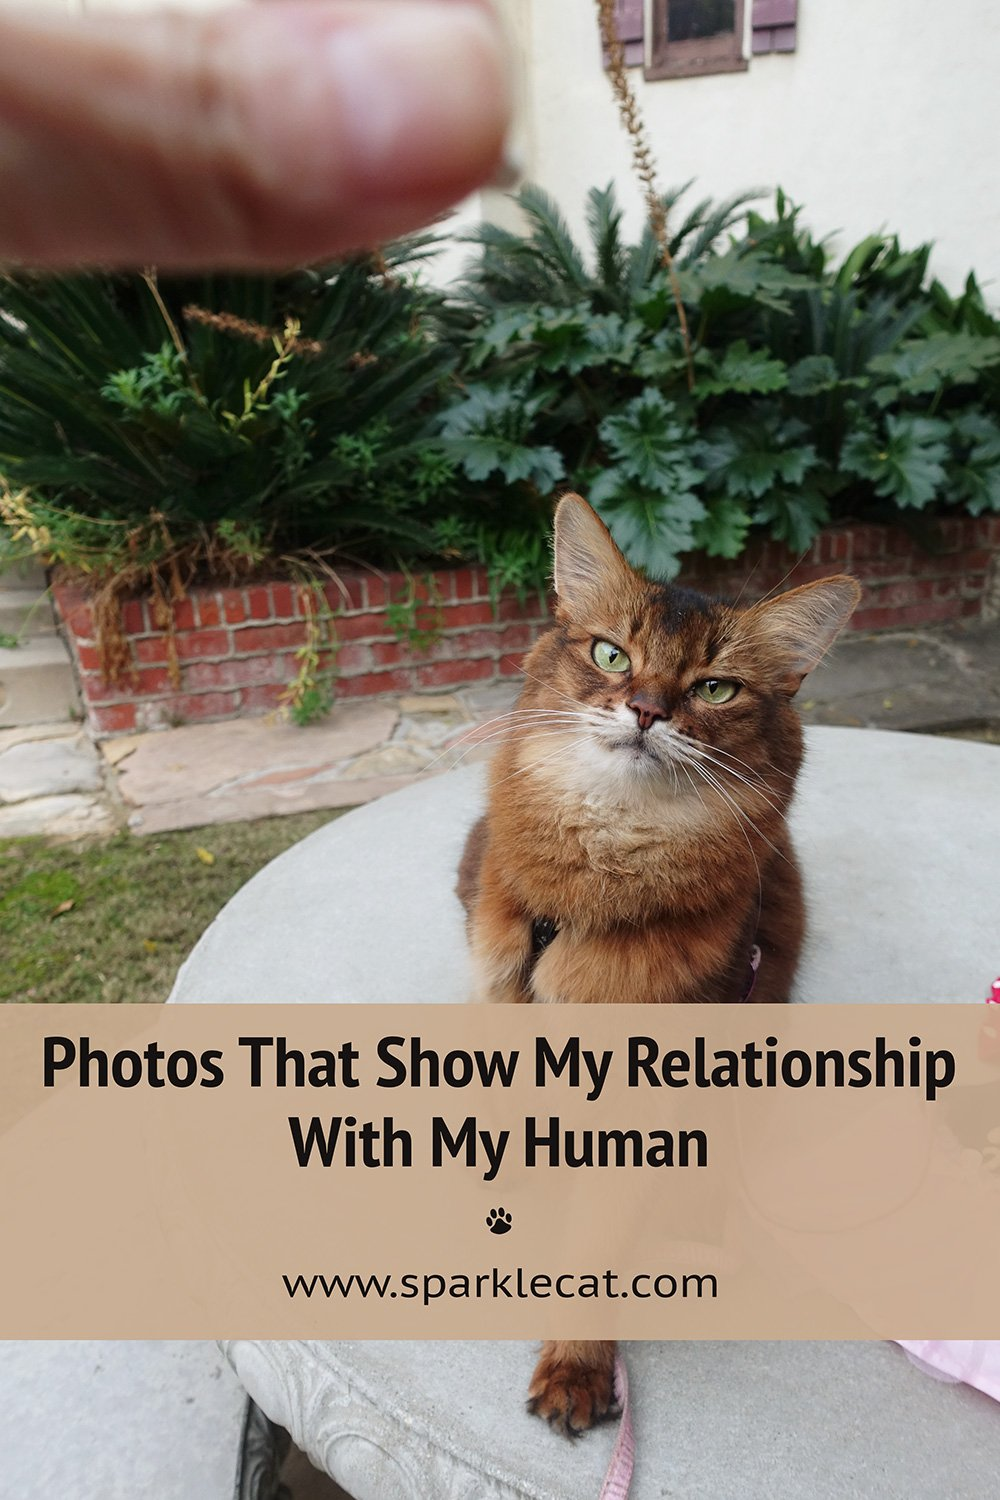 Photos That Show My Relationship With My Human